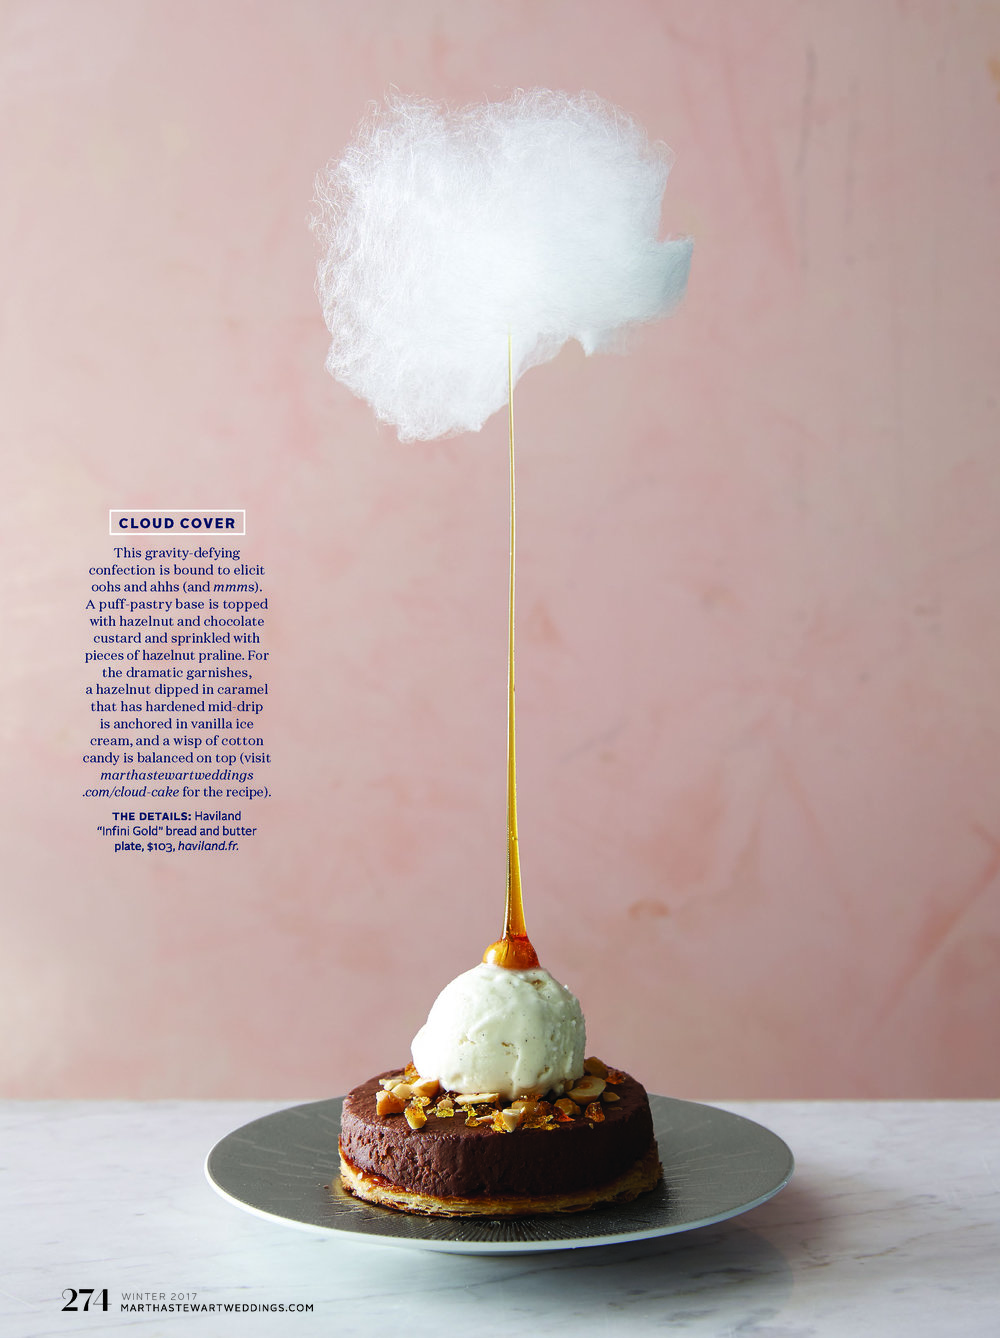 Chocolate and Caramel Hazelnut Cloud Cake, Martha Stewart Weddings